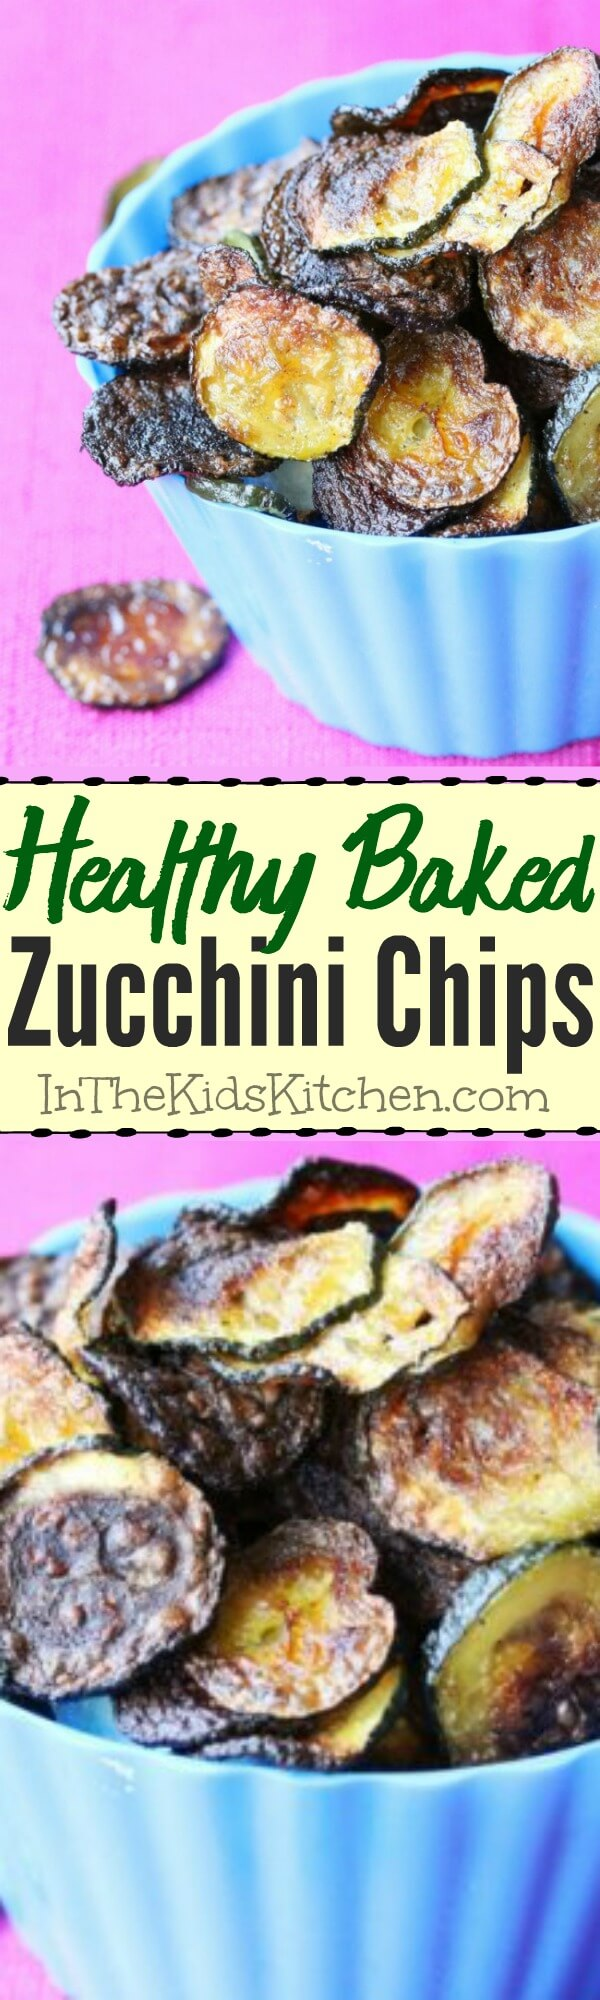 Zucchini chips are a healthy snack that kids will love! A win-win!